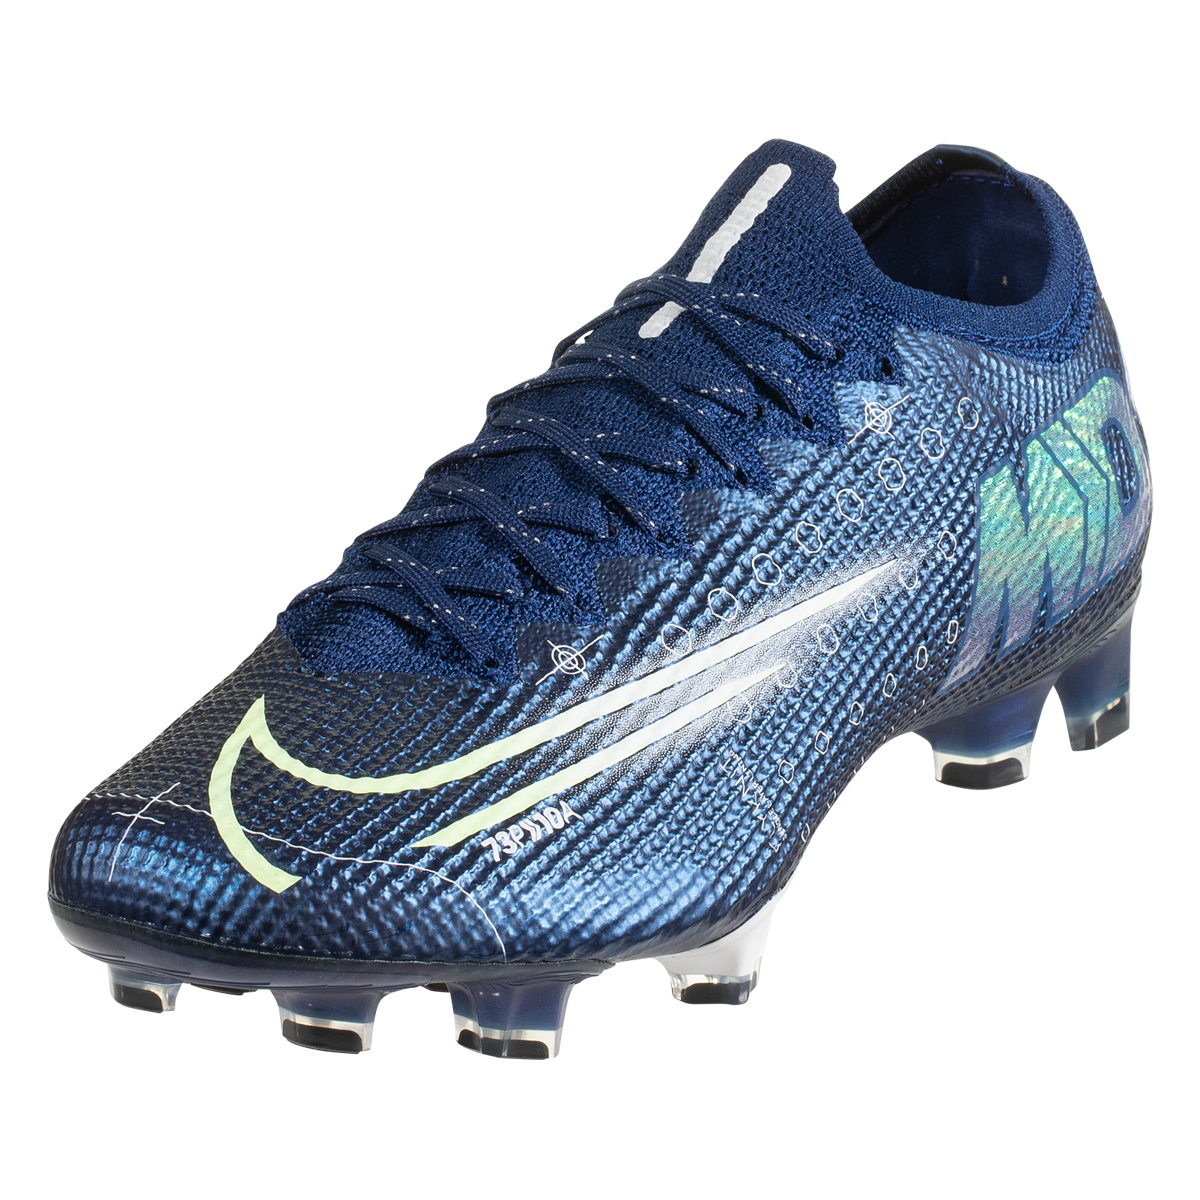 Nike Mercurial Vapor 13 Elite FG Soccer Cleat Blue Void